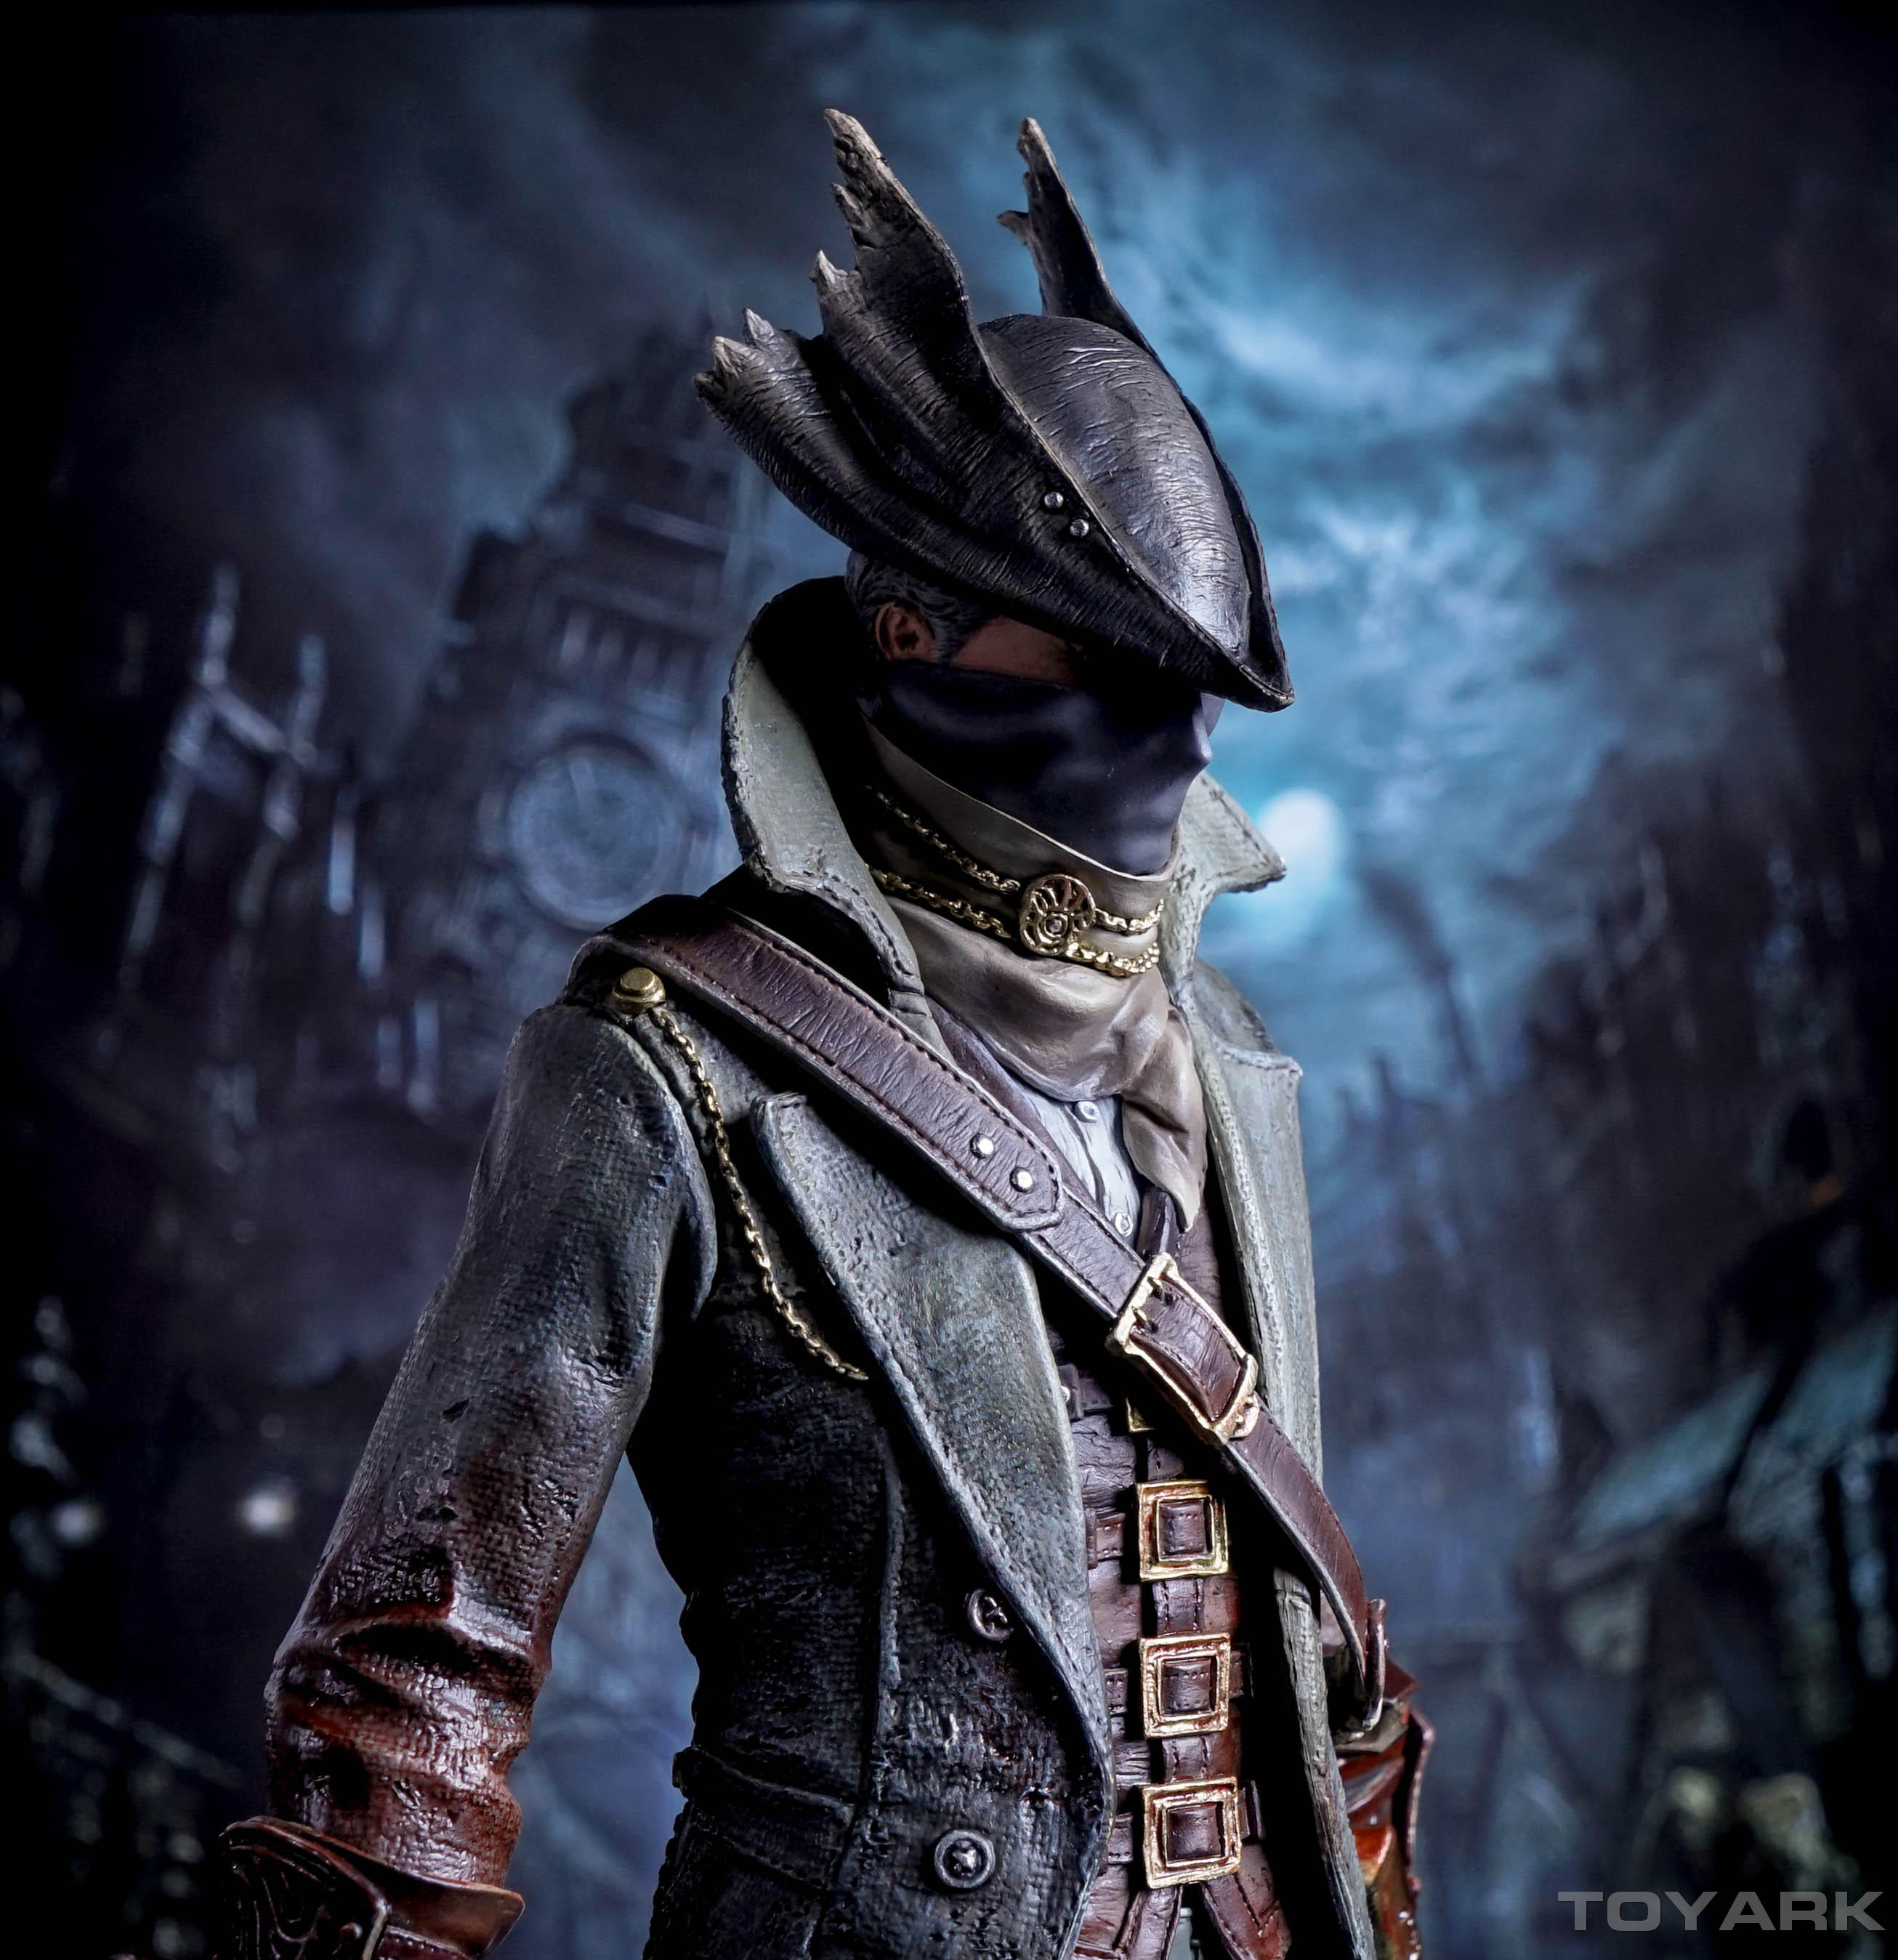 http://news.toyark.com/wp-content/uploads/sites/4/2016/02/Bloodborne-Hunter-PoB-Statue-049.jpg